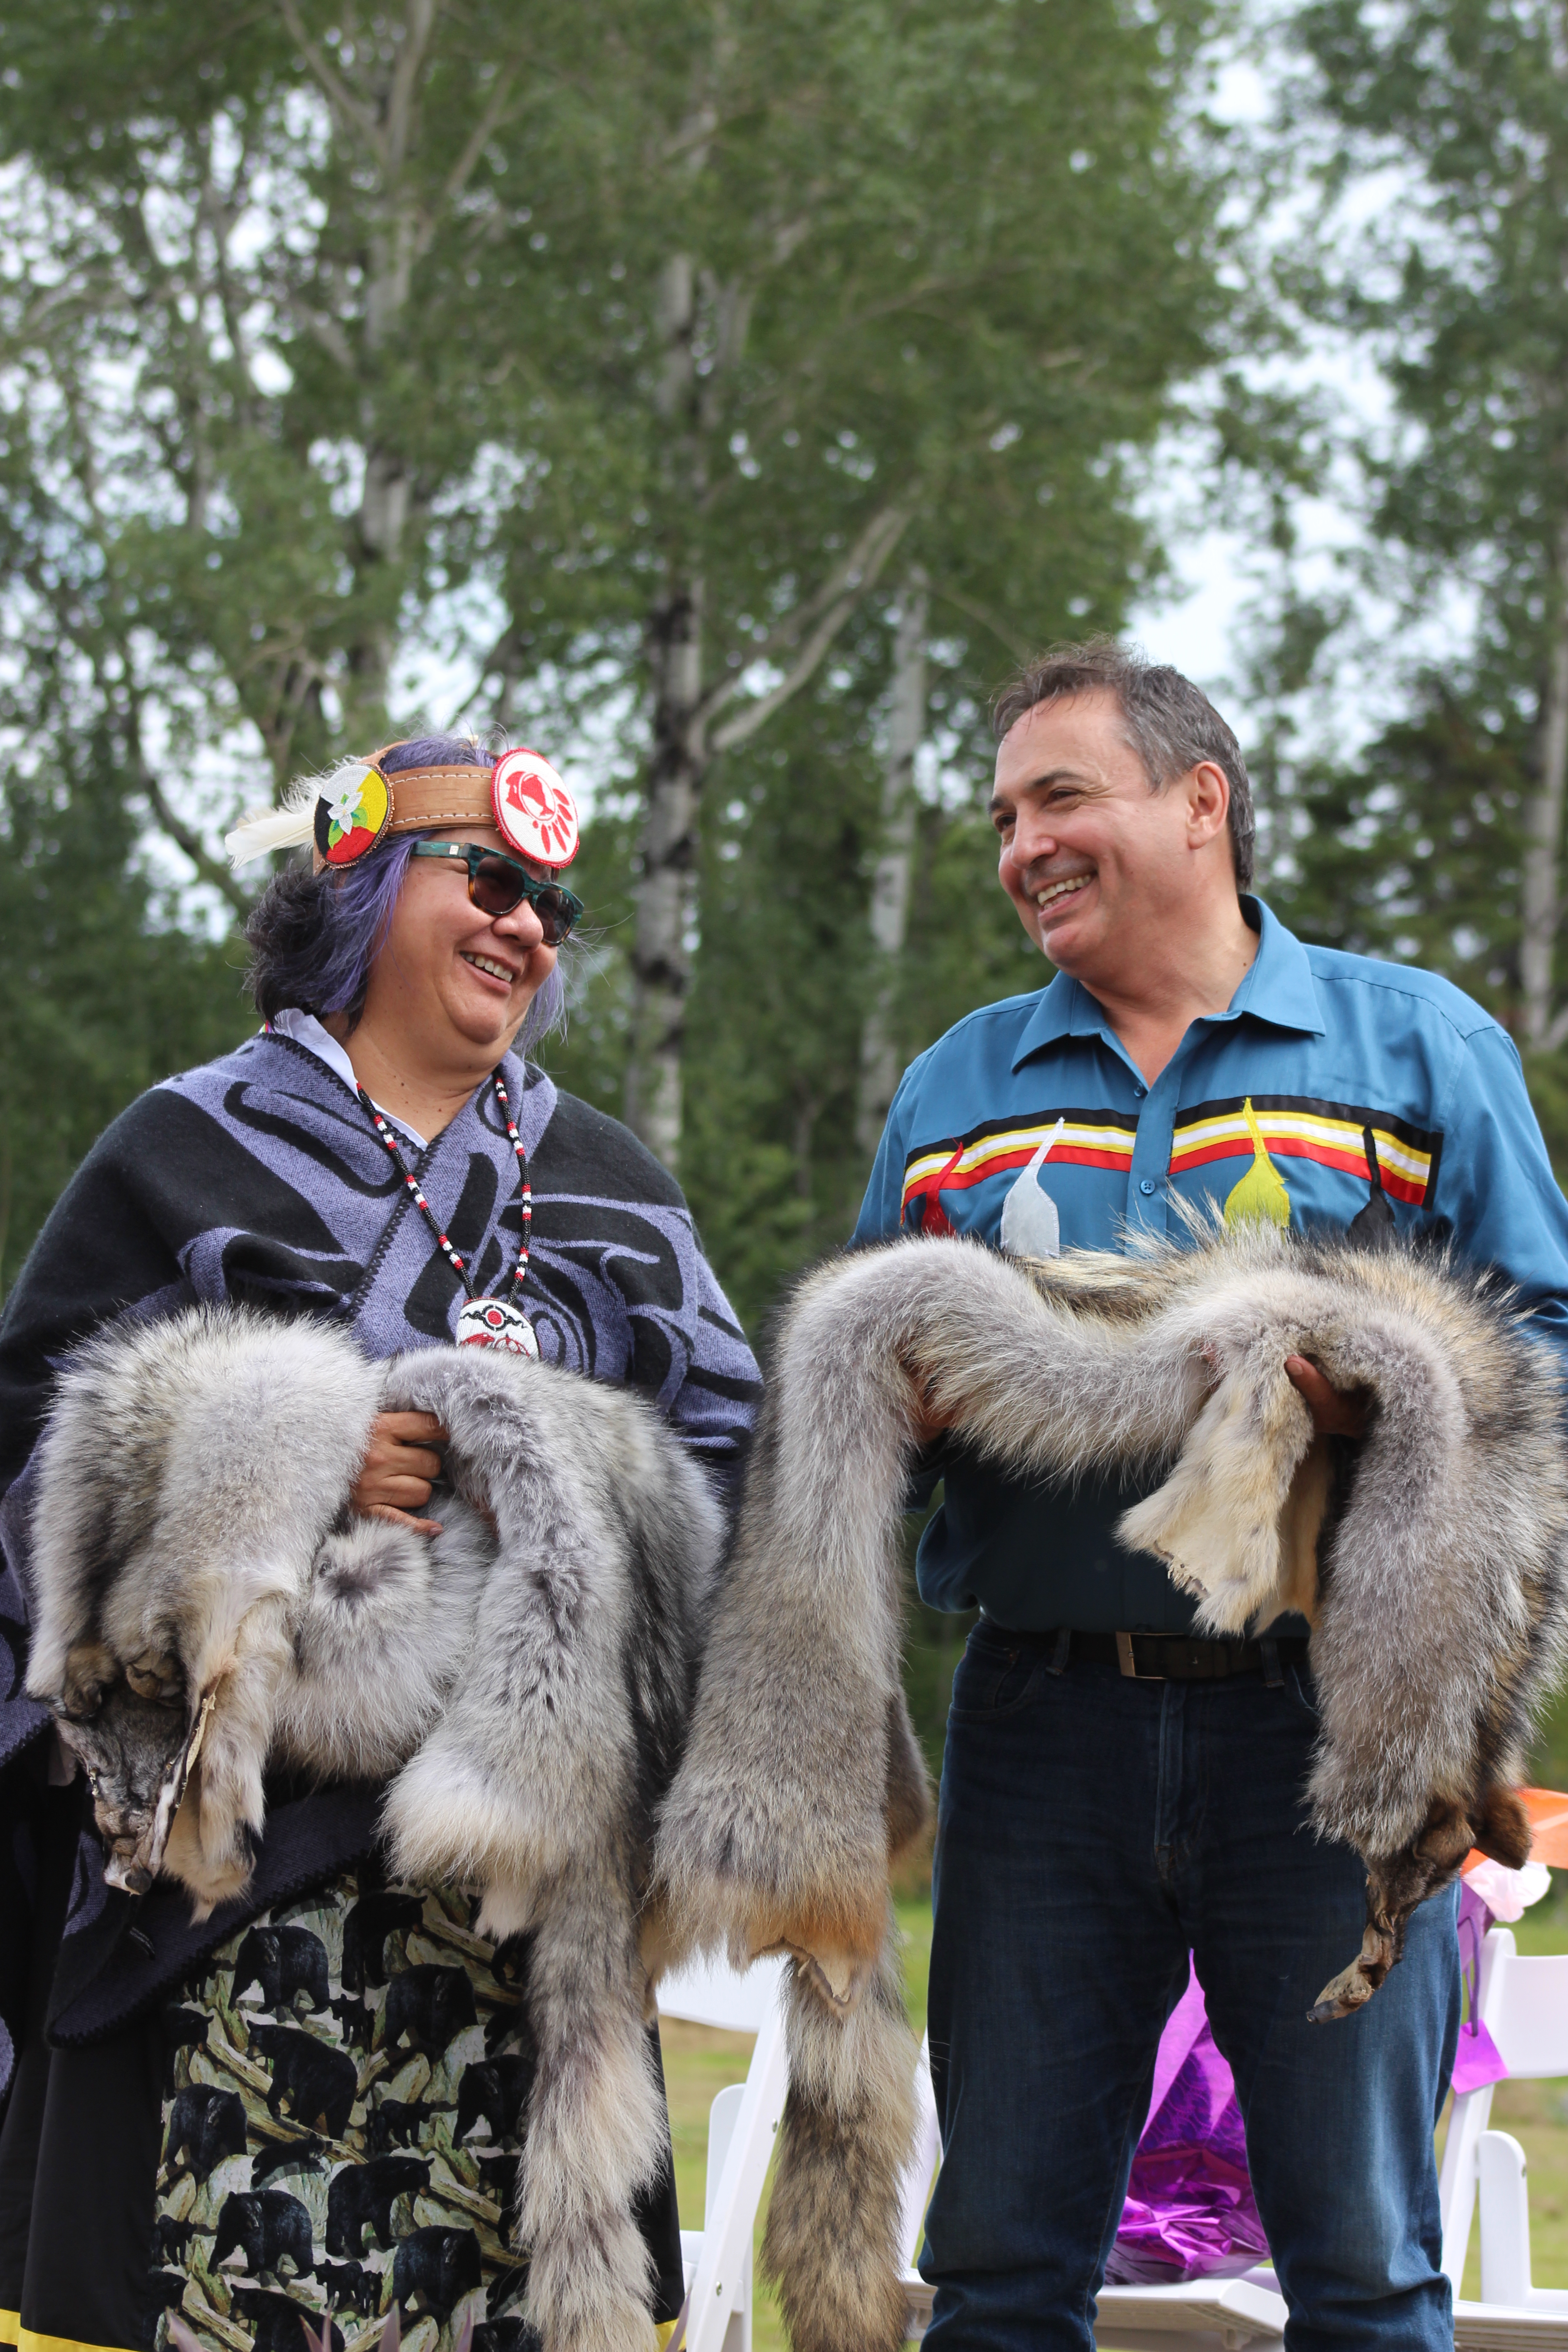 Ontario Regional Chief Rose-Anne Archibald and National Chief of the Assembly of First Nations Perry Bellegarde accept gifts during the Giizis Energy Celebration at KZA-GBFN. Photo: Katelyn Thomas